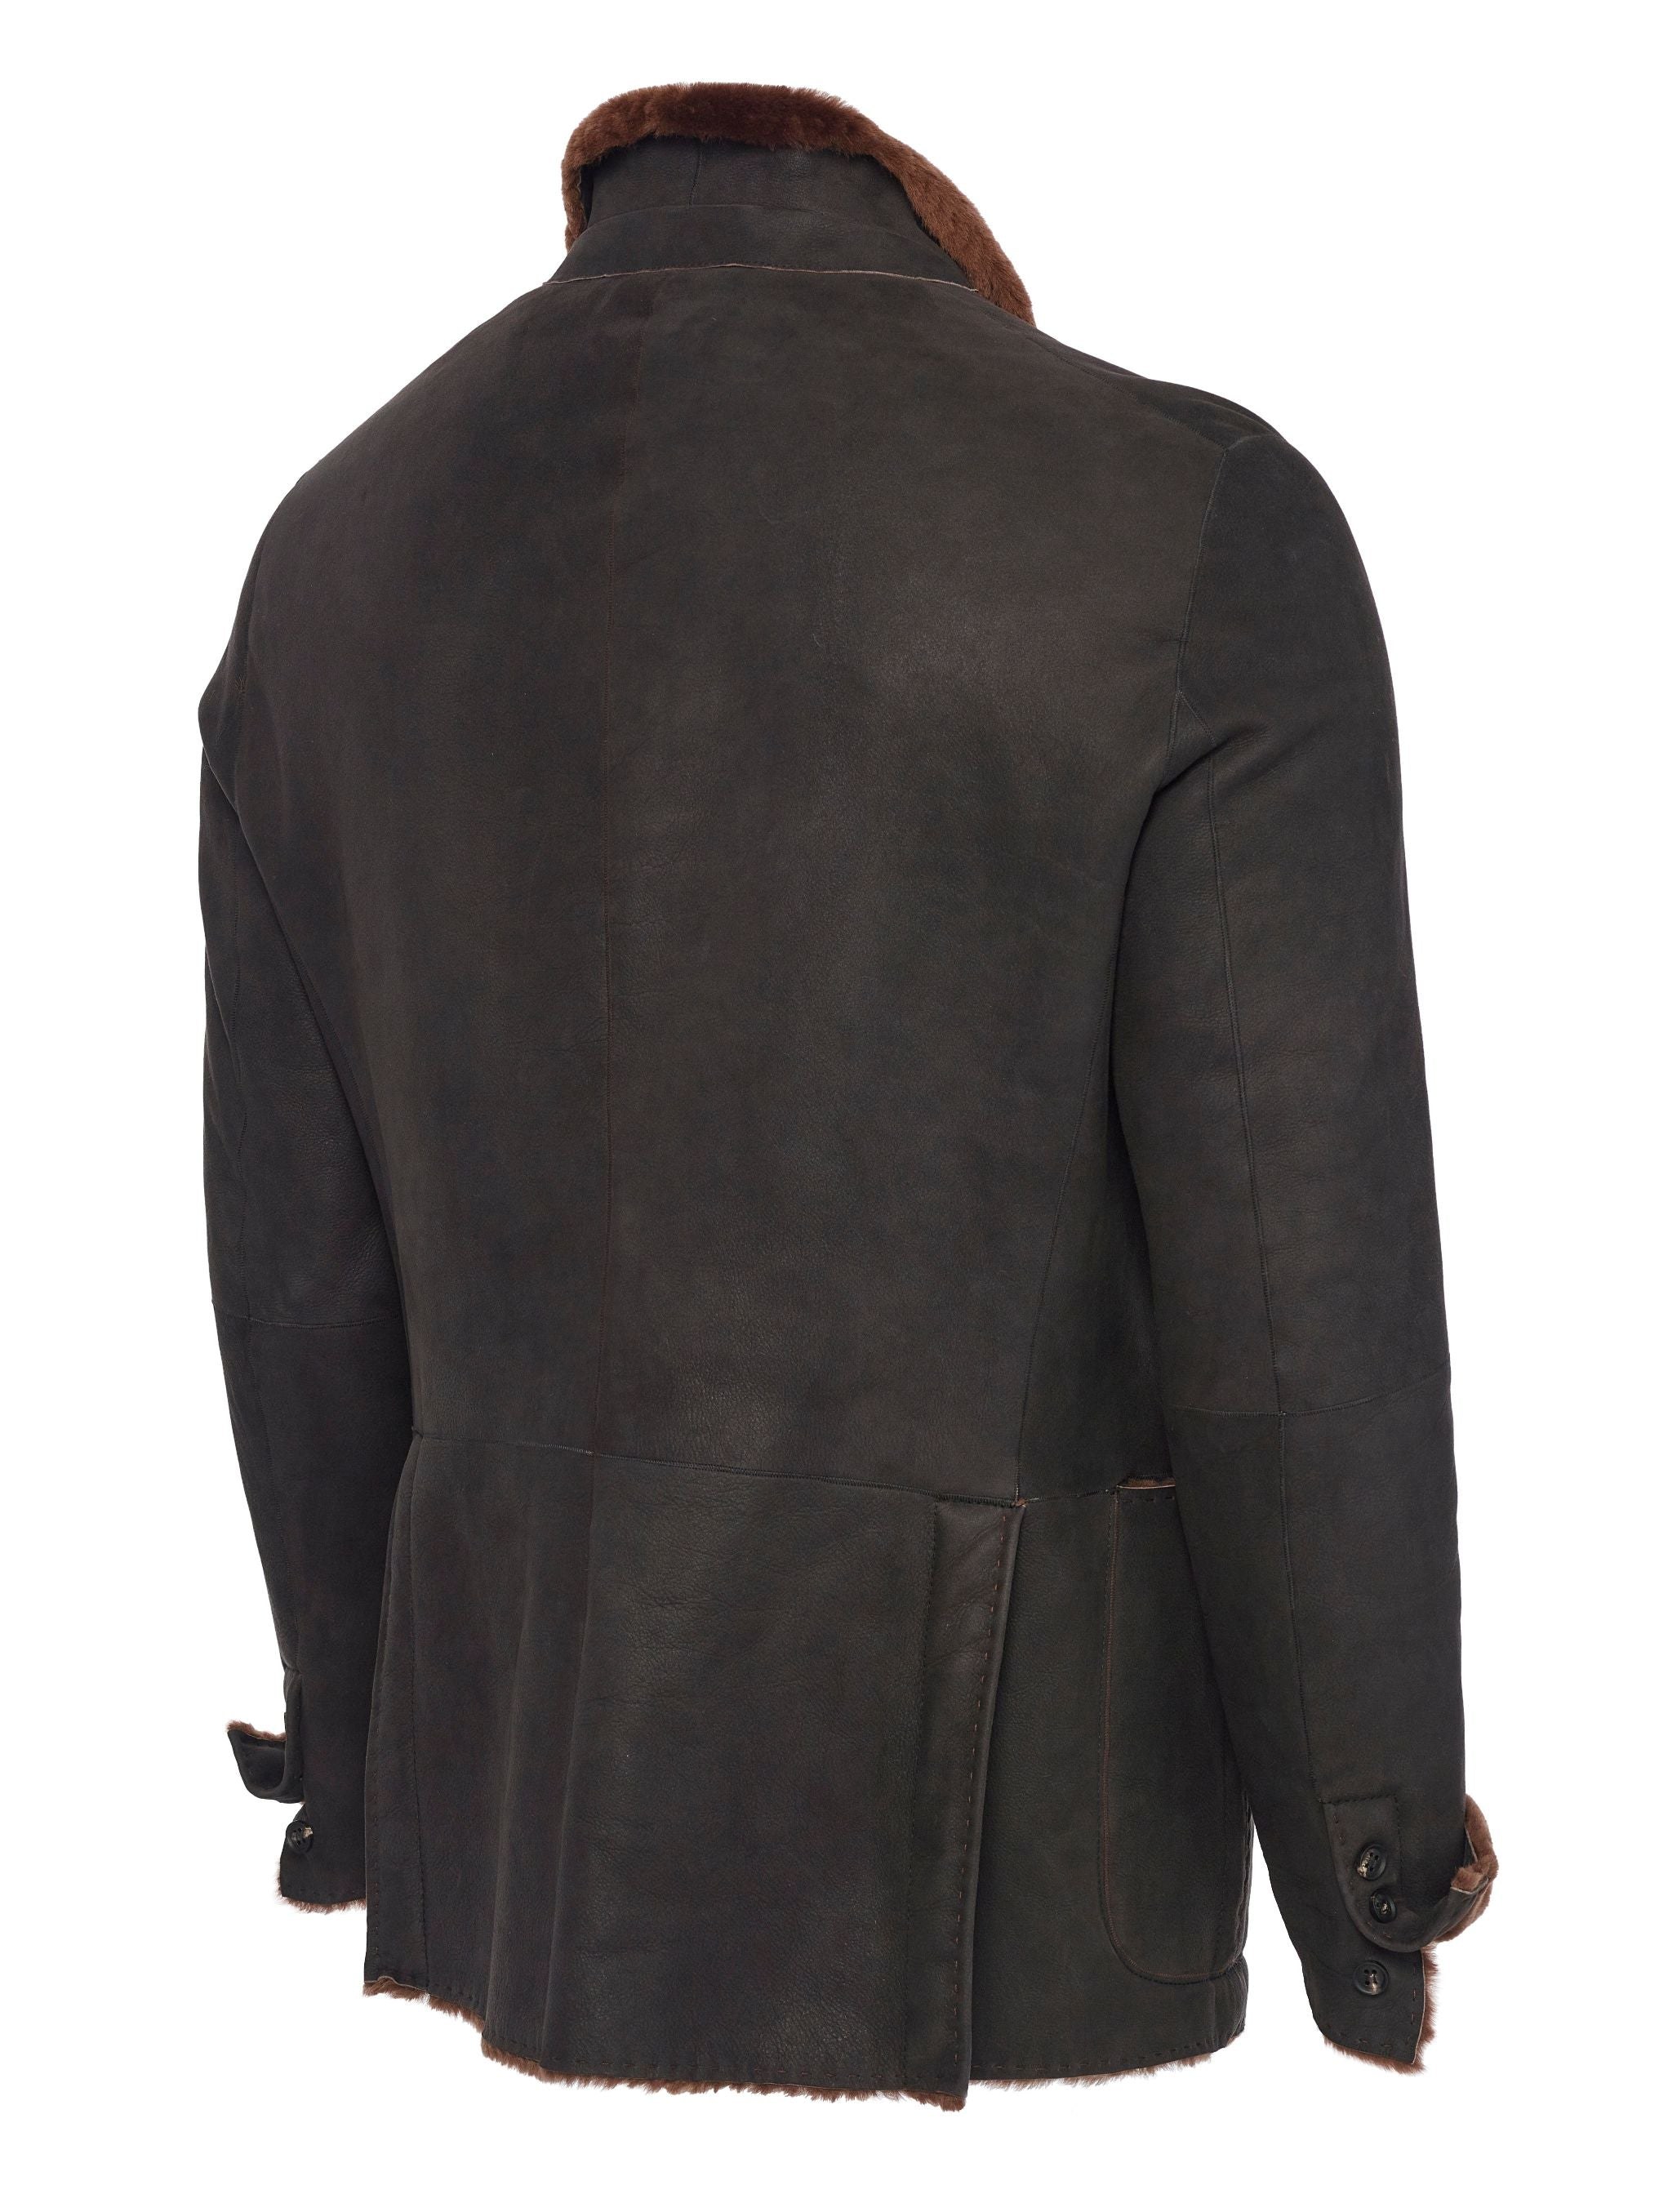 Side view Spanish Lancon featherweight shearling with functioning surgeon cuffs and double back vents